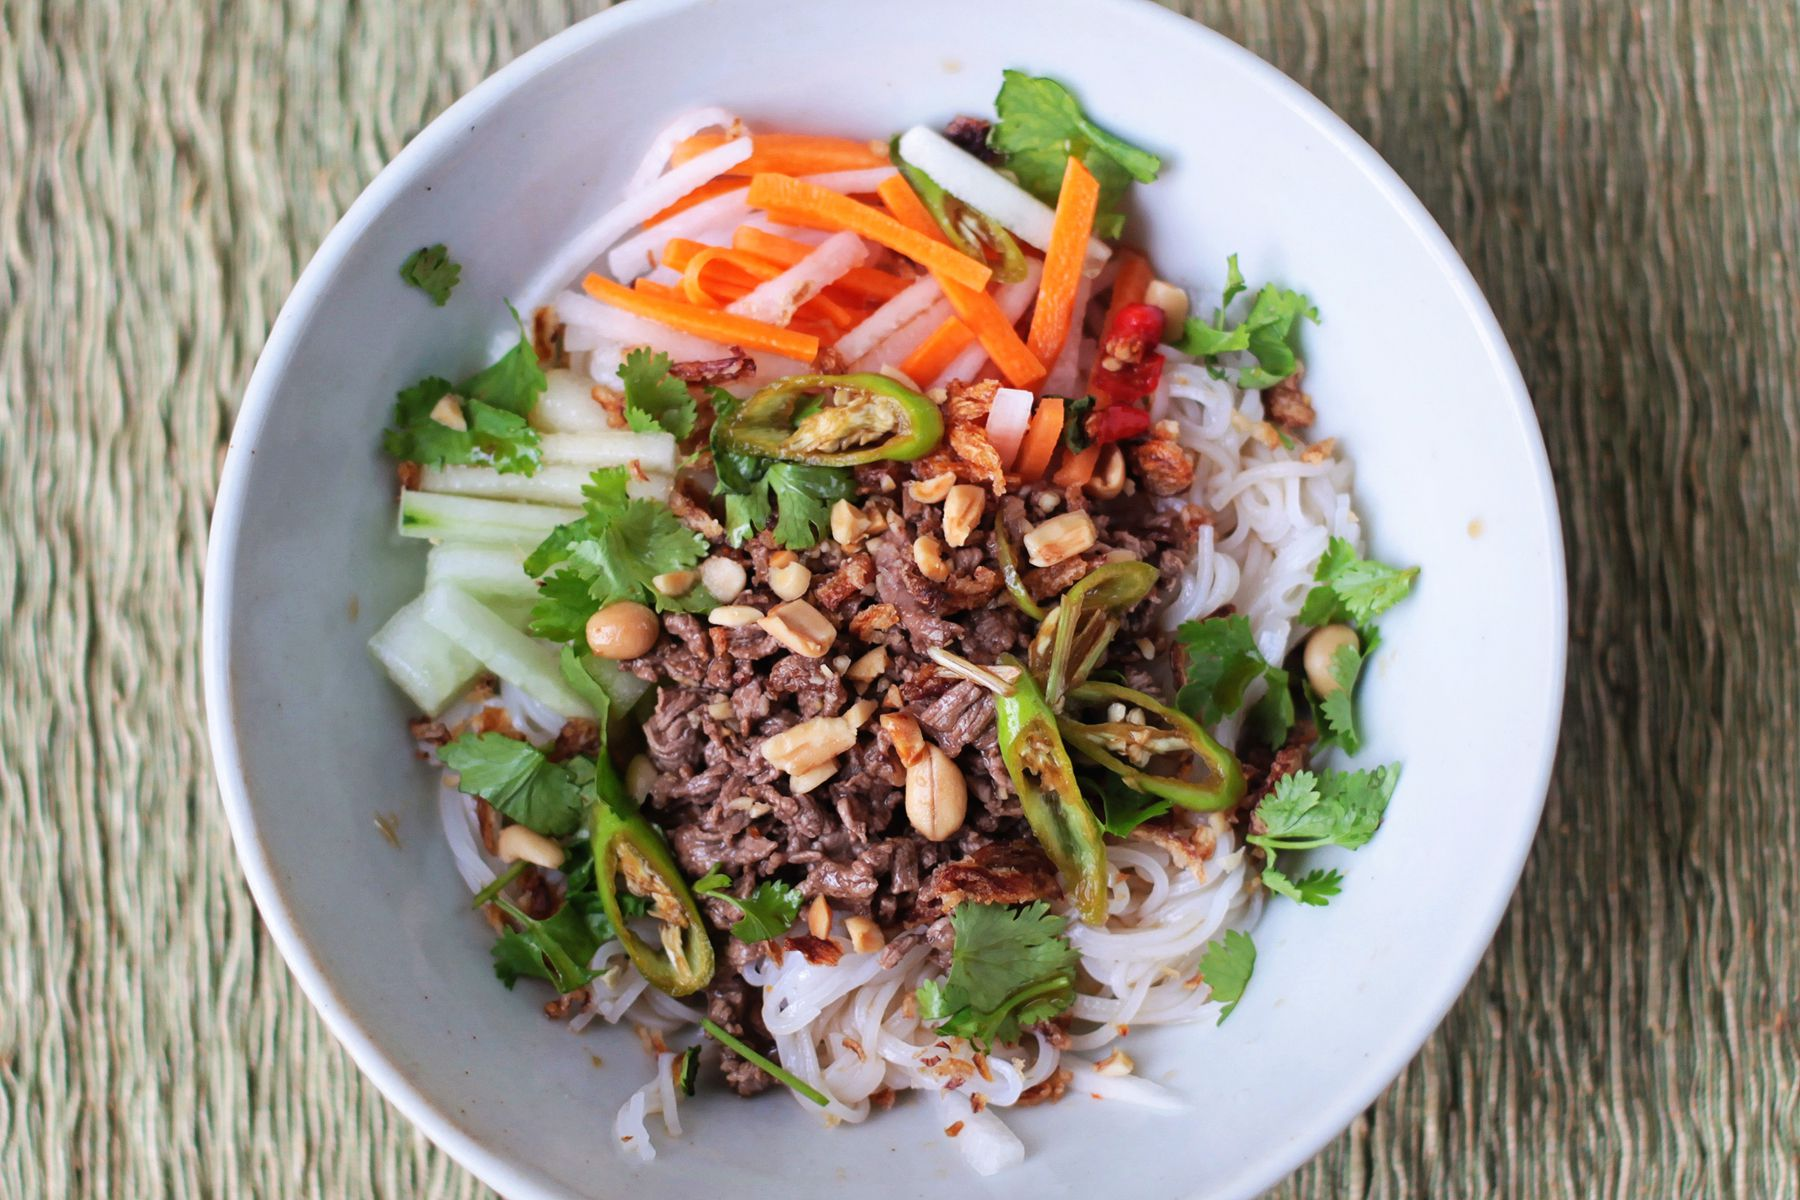 Make Vietnamese Noodle Salad with Lemongrass Beef (Bun Bo Xao) at Home